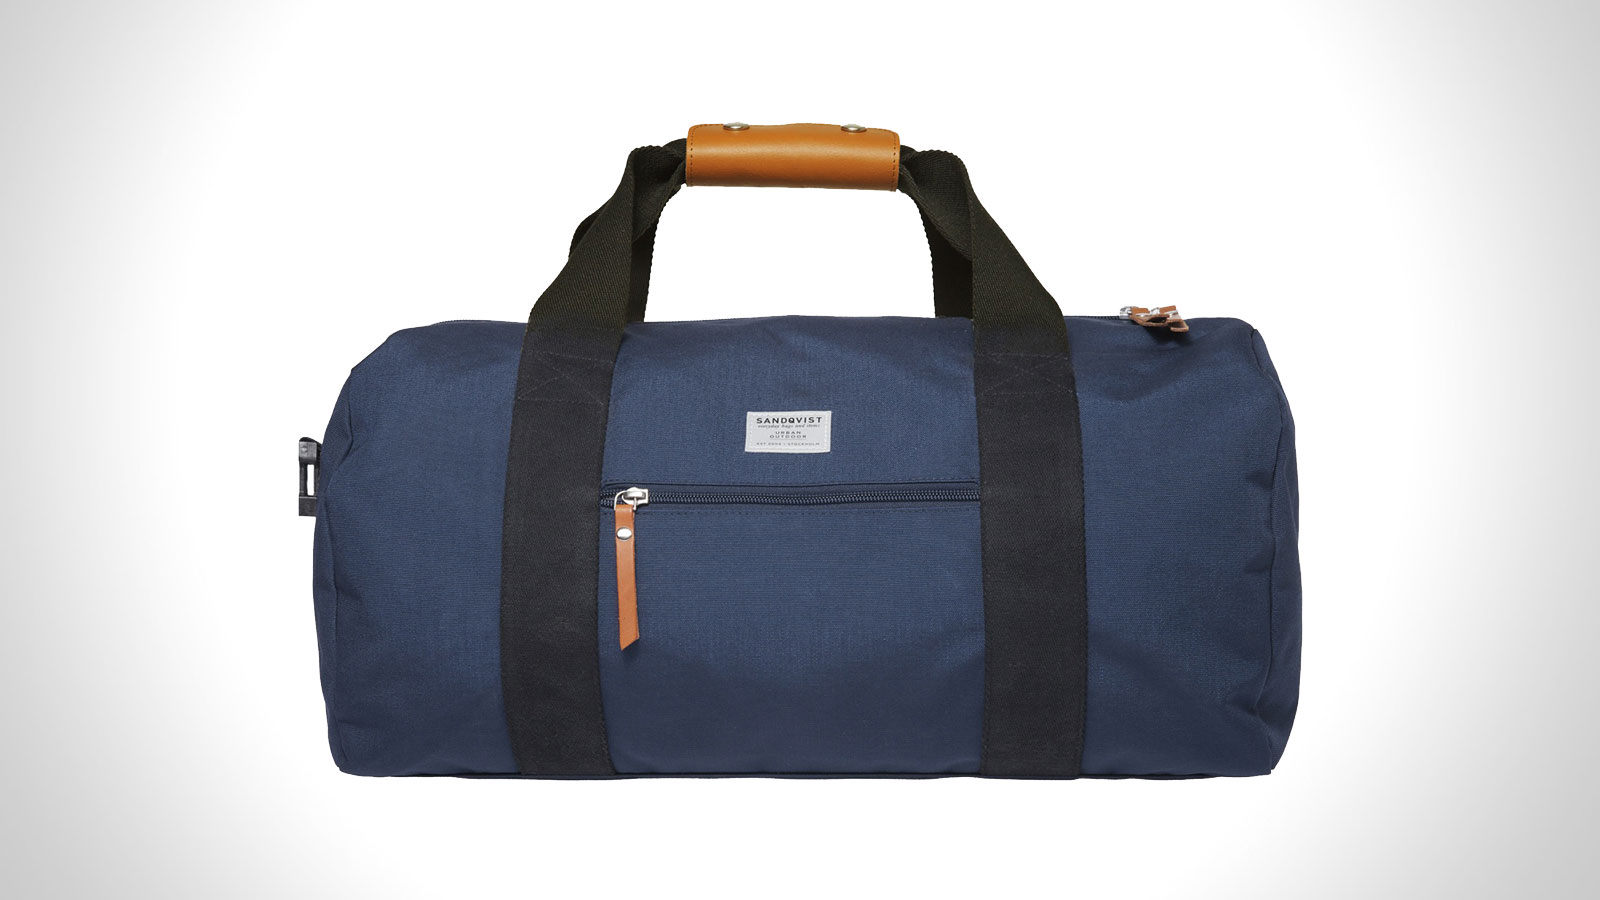 Sandqvist Floyd - Blue Gym Duffel Bag | best mens gym duffle bag